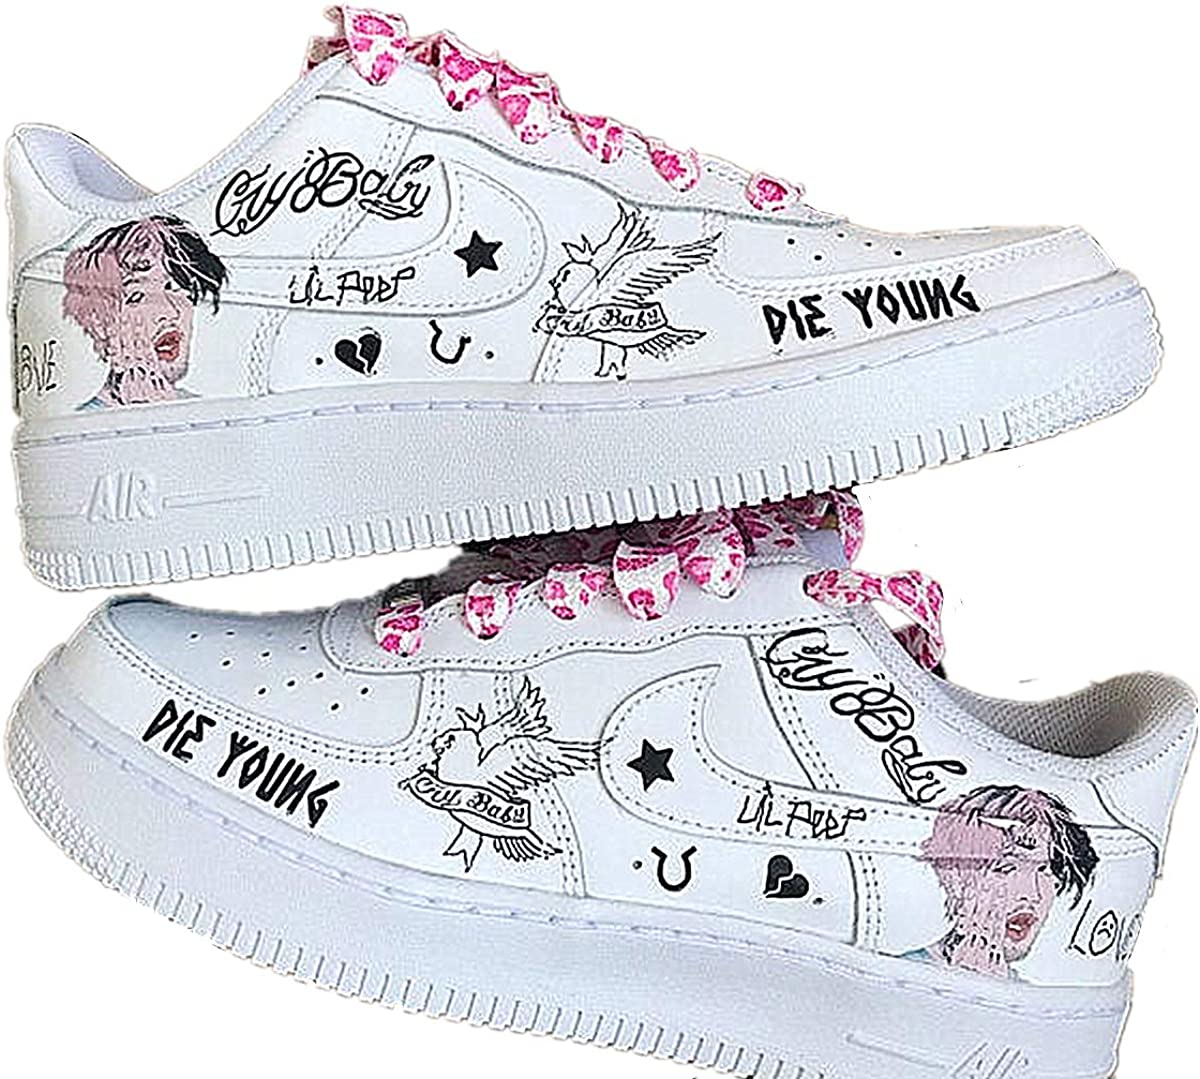 Reflexión Rafflesia Arnoldi famoso  Amazon.com: Lil Peep Theme Iron on Patches for Custom Nike Air Force 1  |Perfect Lil Peep Stickers for All Sizes AF1 Sneaker Custom Shoes: Shoes